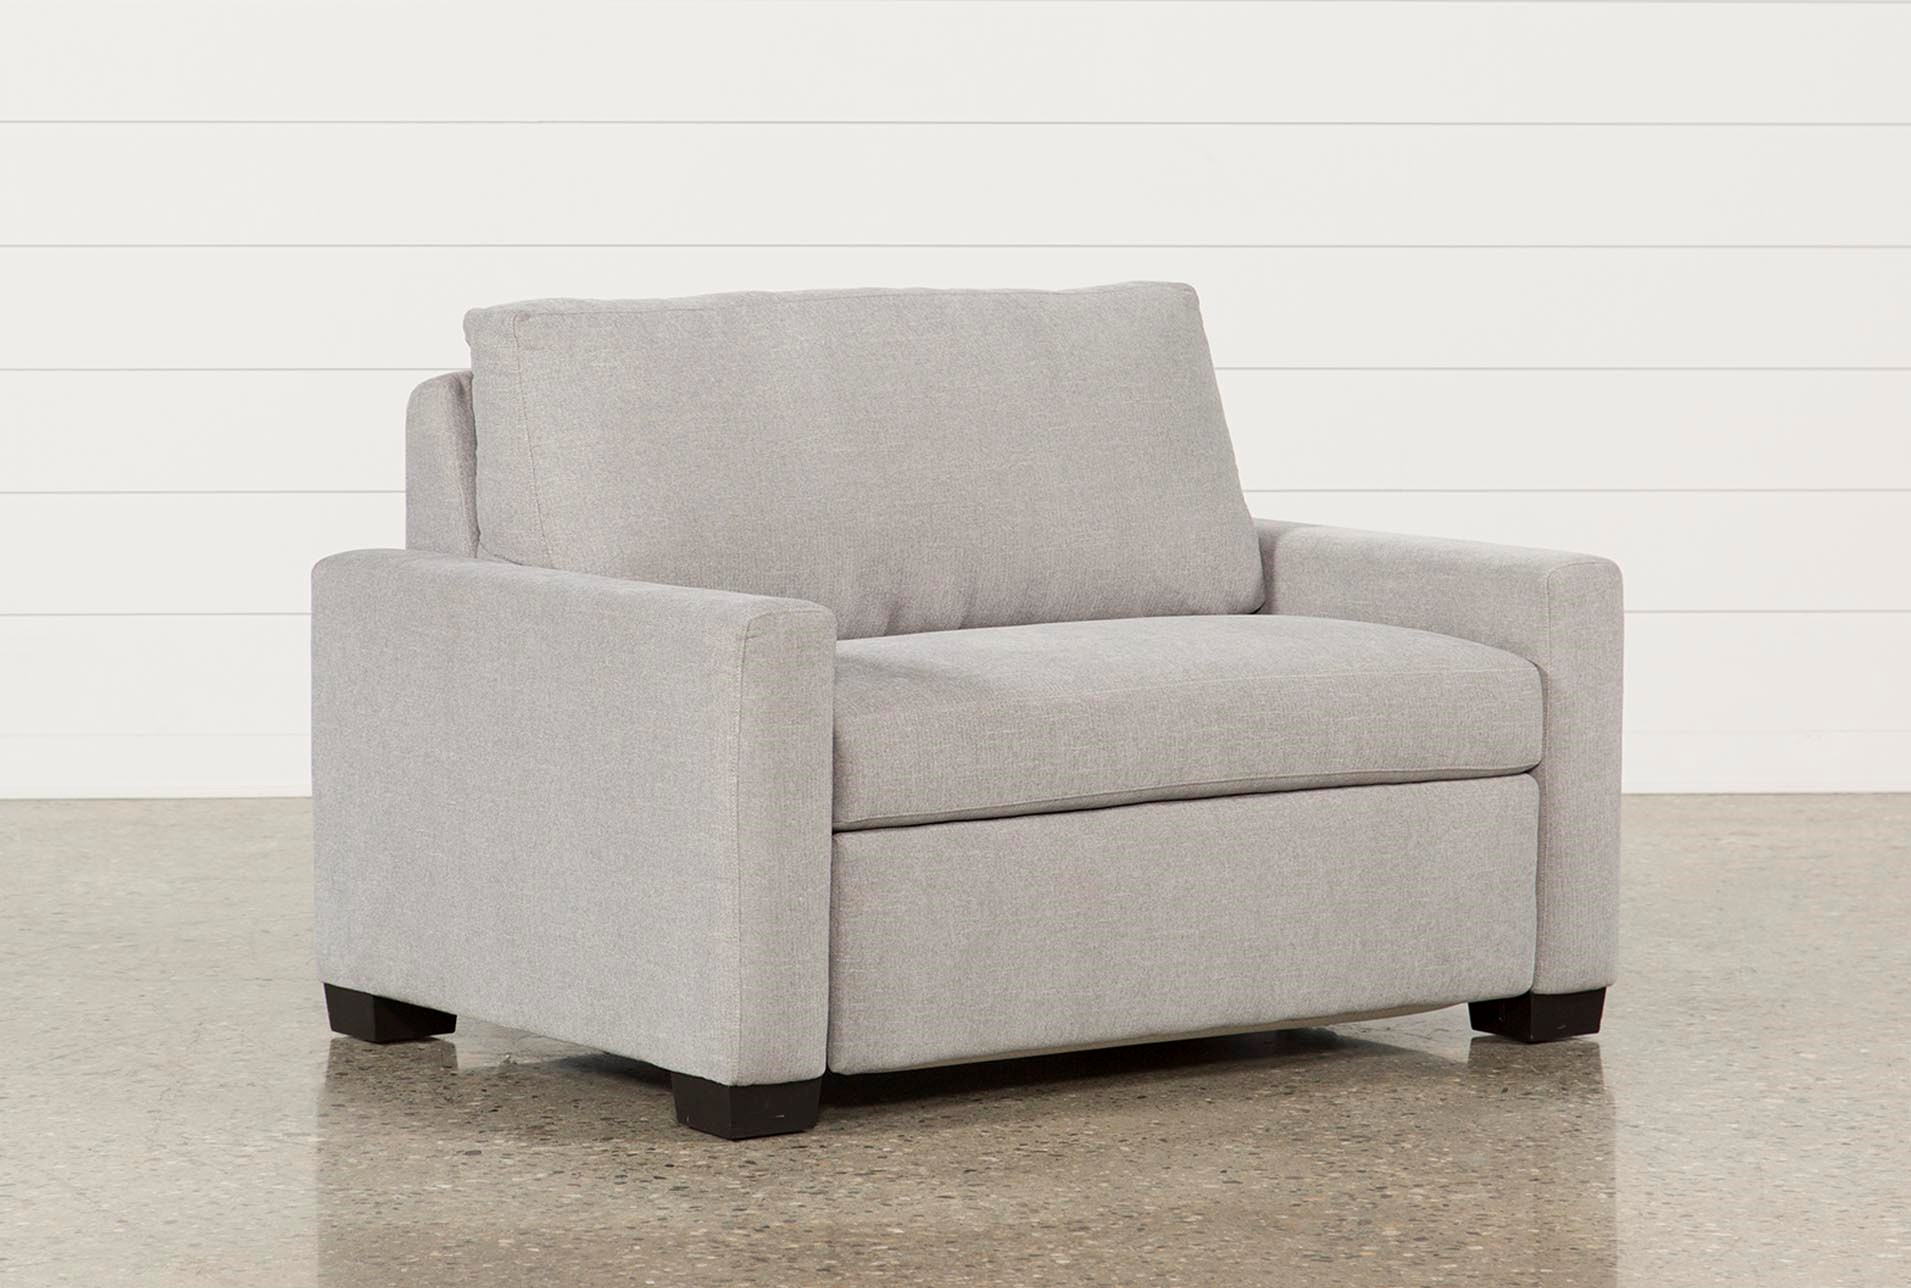 Mackenzie Silverpine Twin Sofa Sleeper Qty 1 Has Been Successfully Added To Your Cart